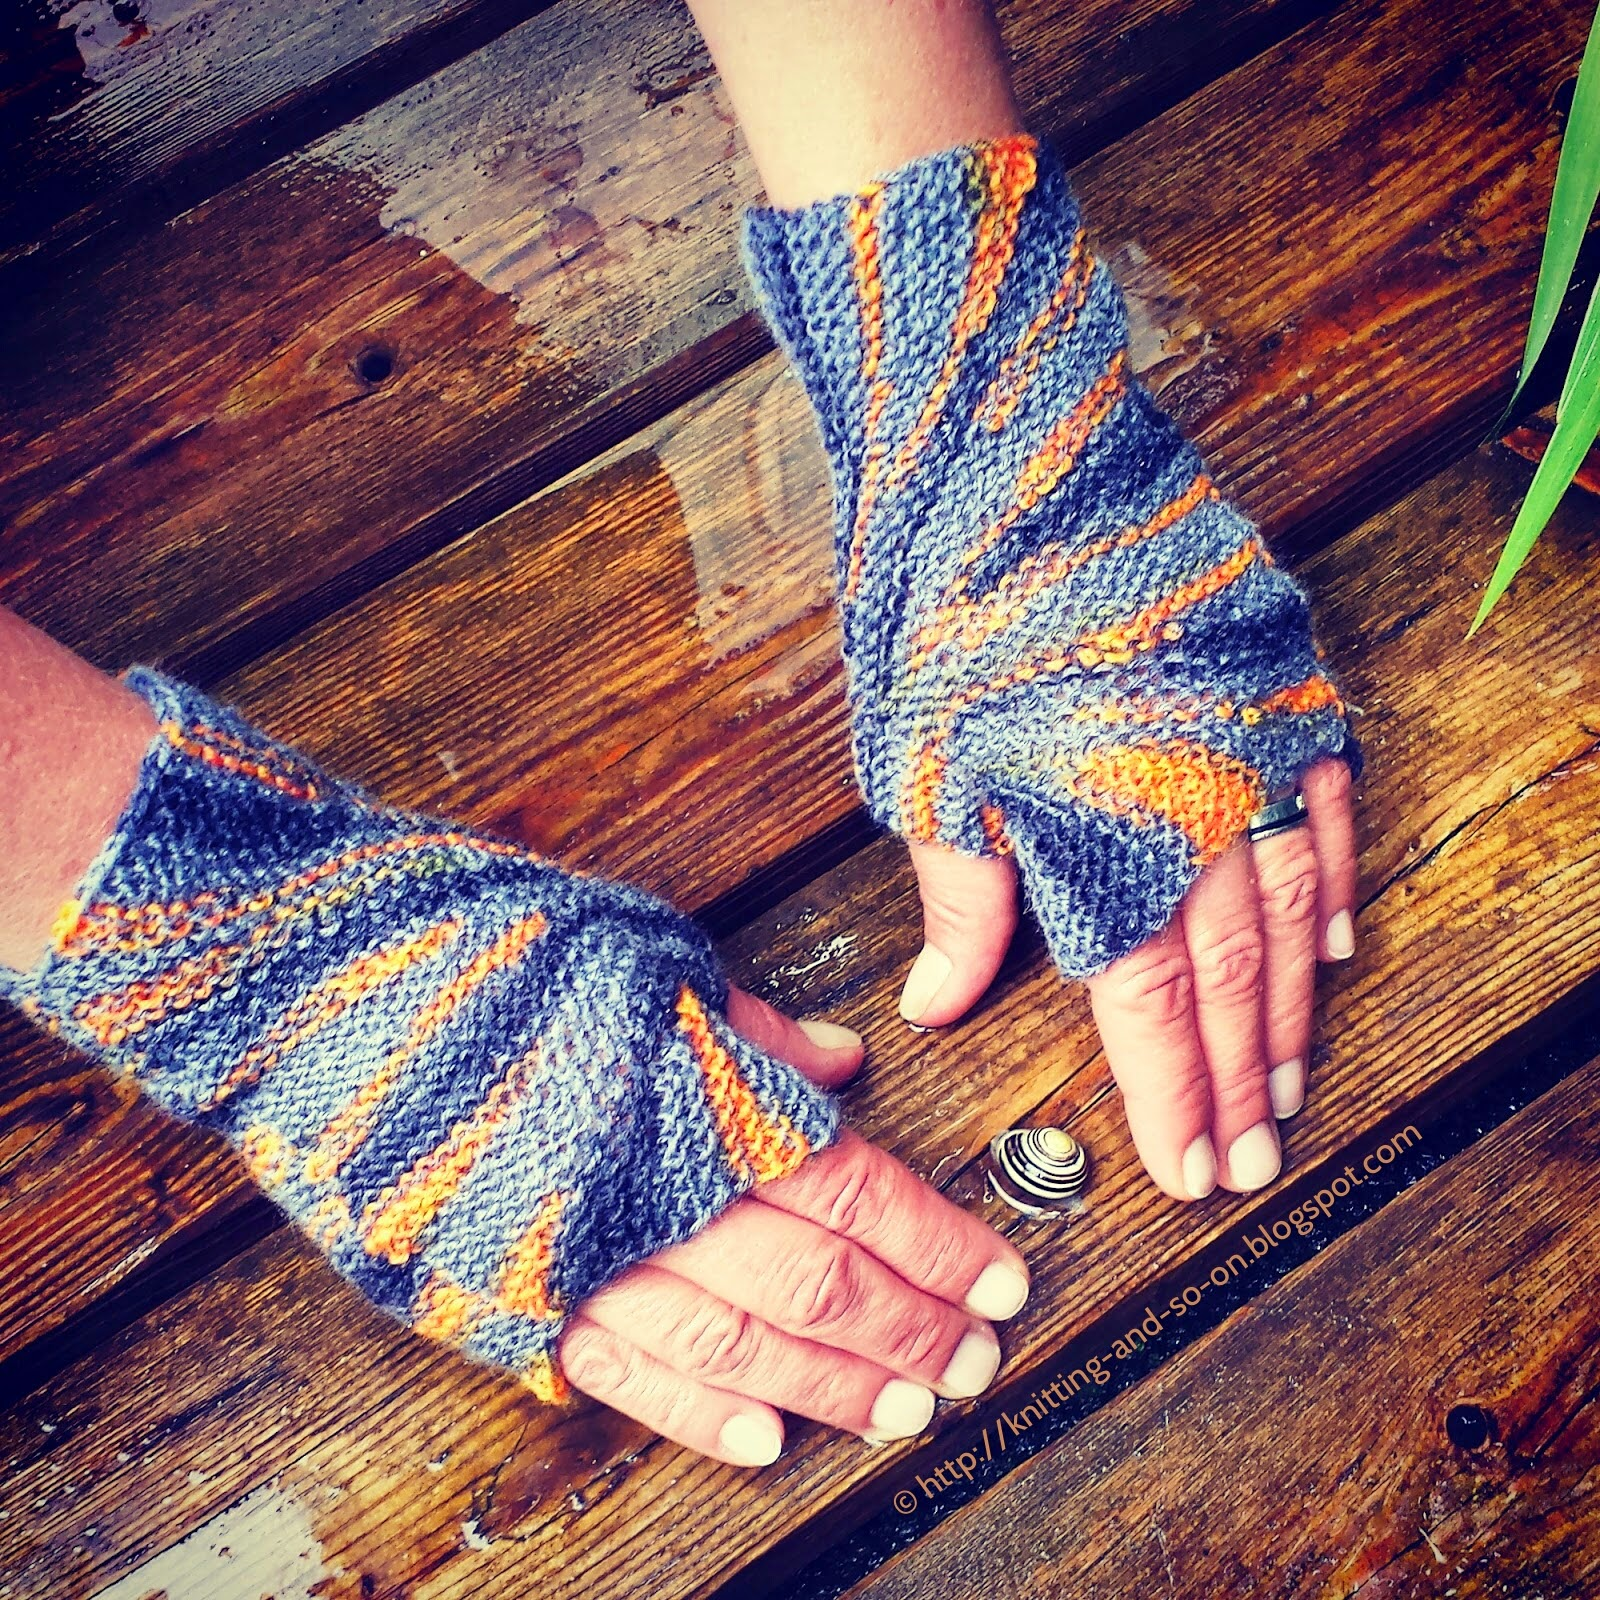 Starry, Starry Night: 11 Stellar Knitting Patterns - Stitch and Unwind